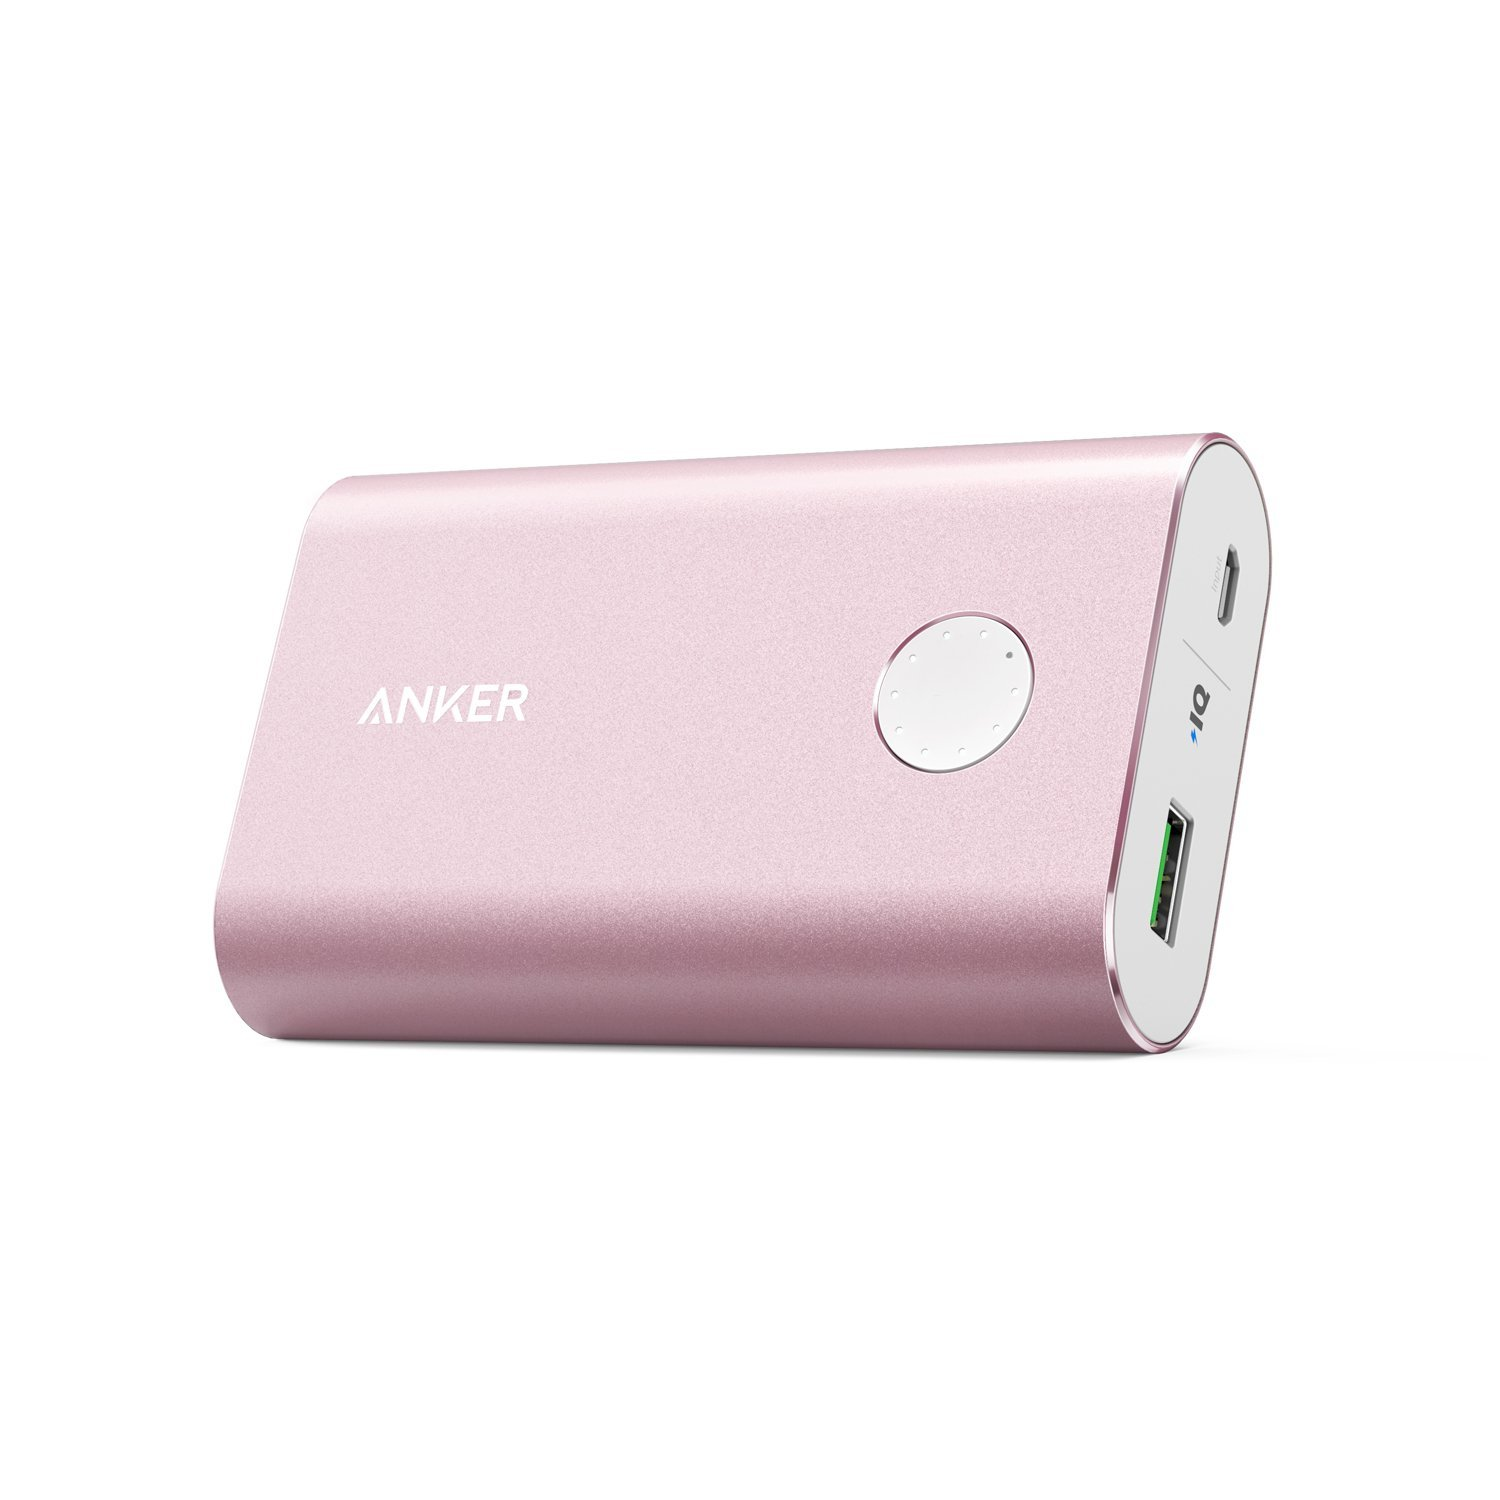 Anker PowerCore+ Quick Charge 3.0 10050mAh Pink